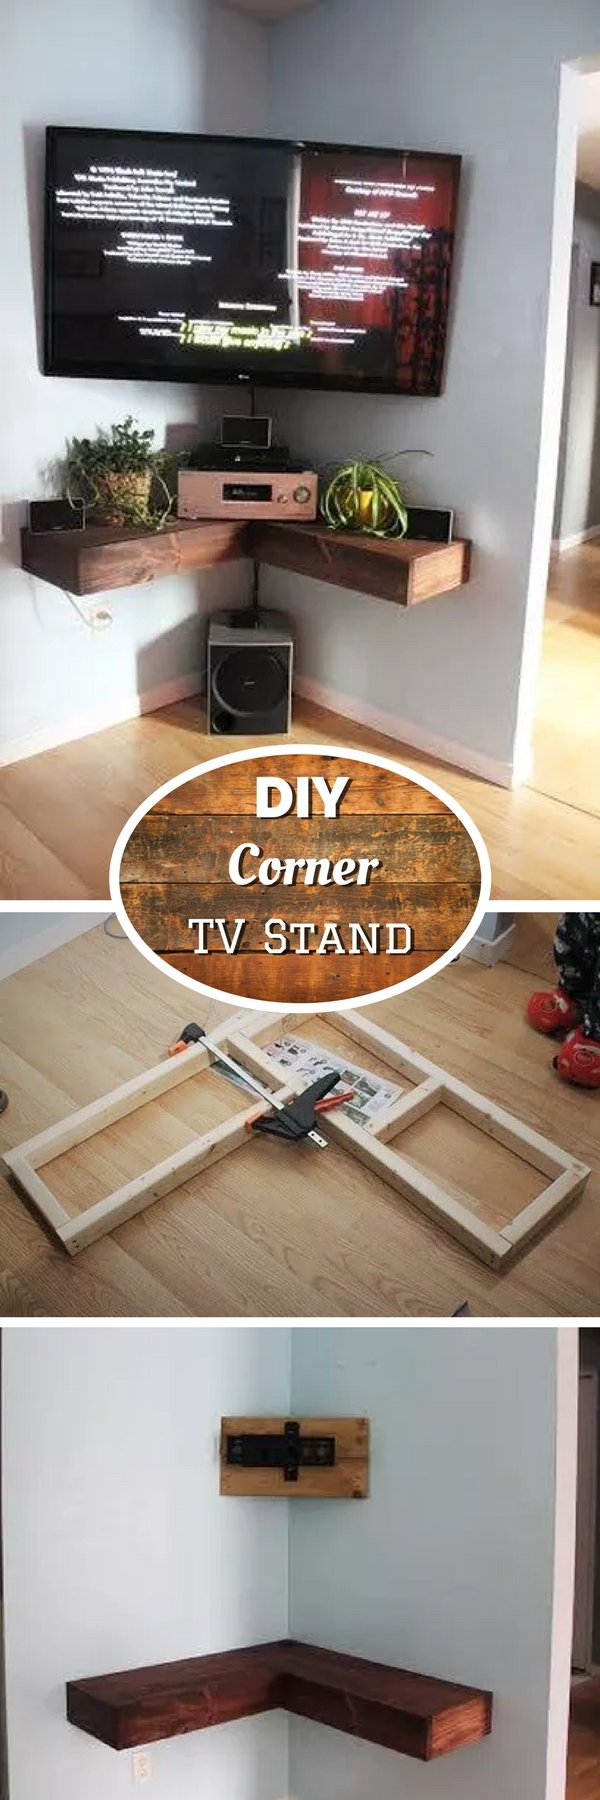 21 Diy Tv Stand Ideas For Your Weekend Home Project # Meuble Tv Gamer